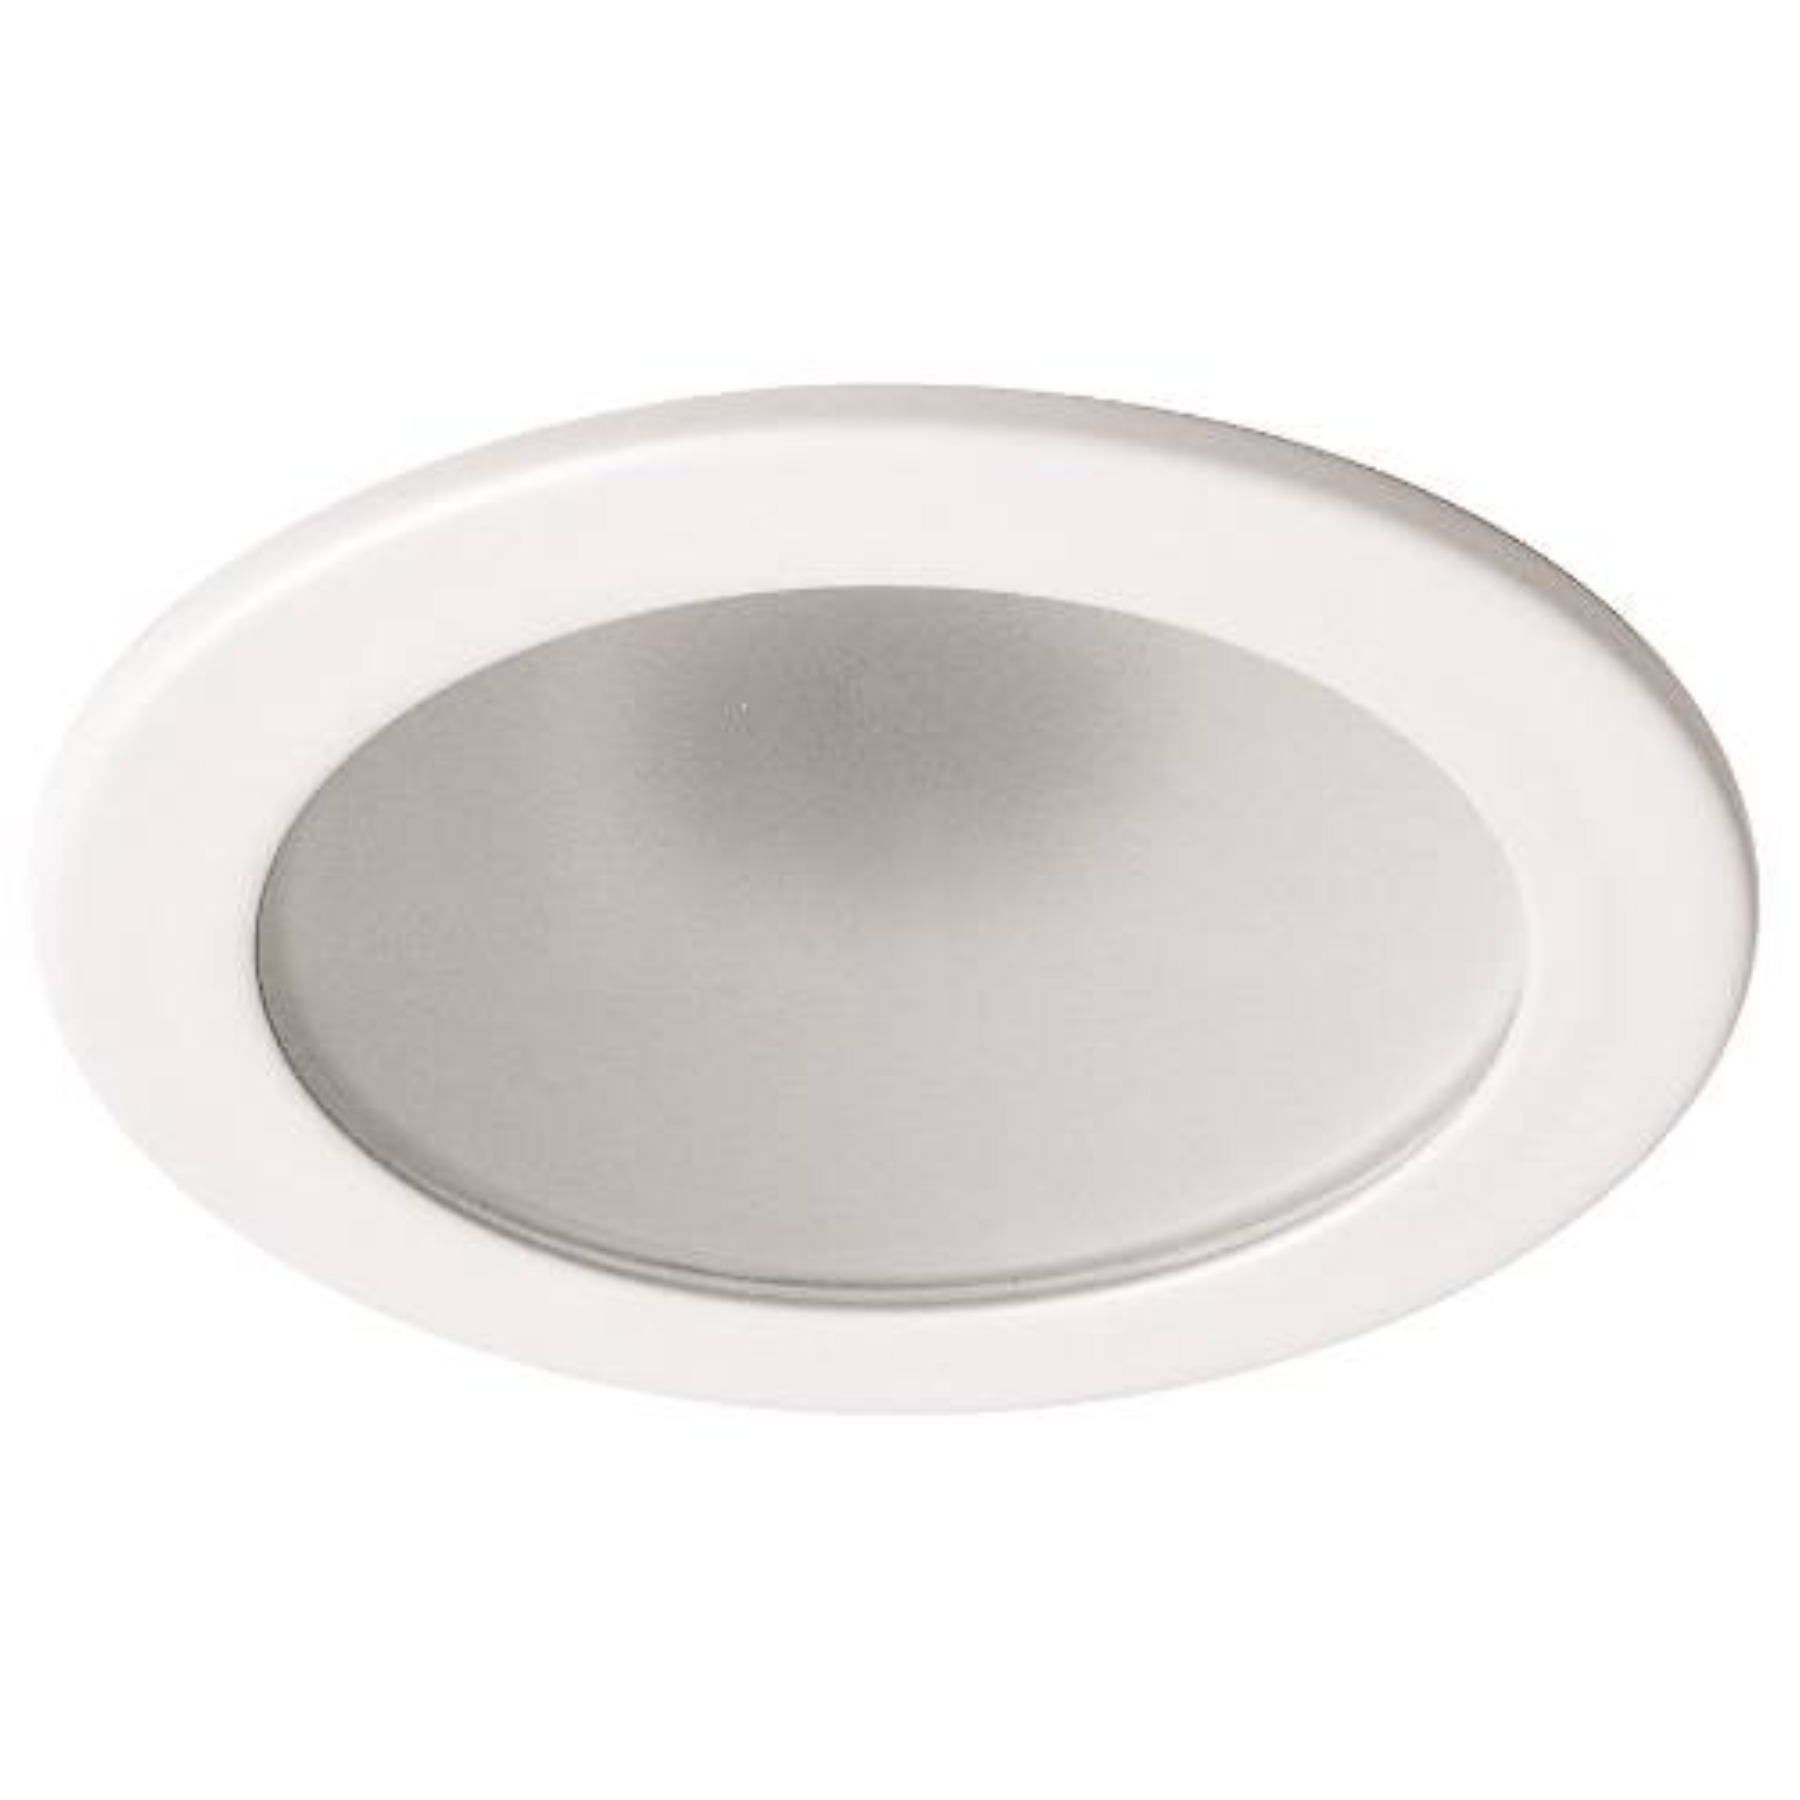 MONUMENT� 4 IN. RECESSED VAPOR TRIM, LOW VOLTAGE, FROSTED GLASS WITH WHITE RING, 4-7/8 X 3-1/2 IN.